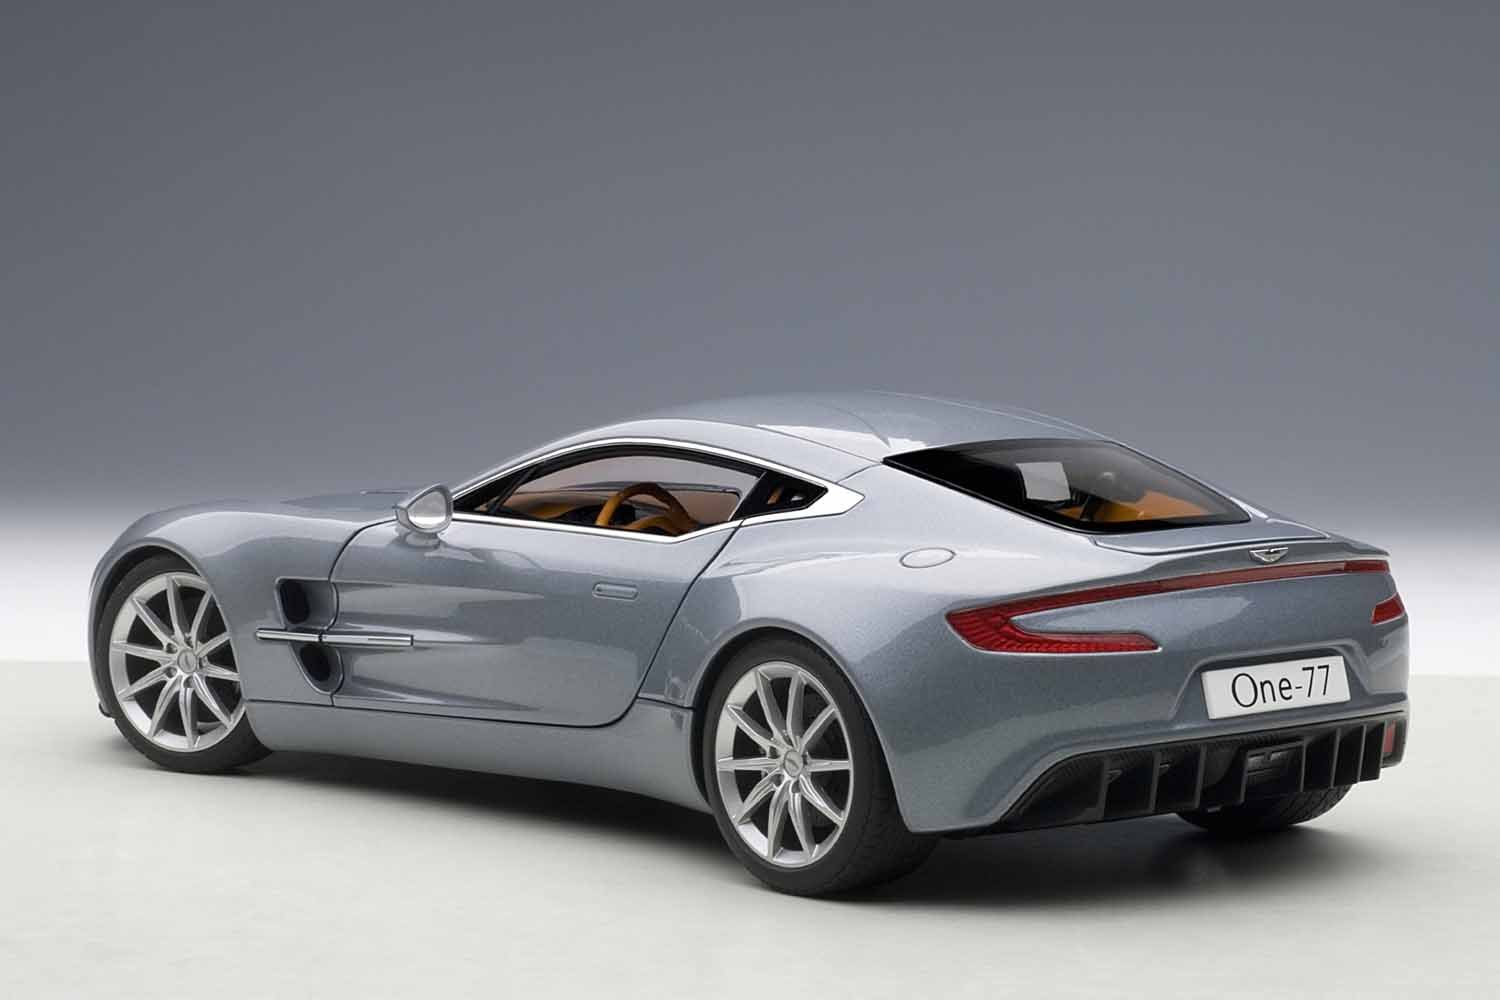 Buy AUTOart Aston Martin ONE Blue Online At Low Prices In - Aston martin one77